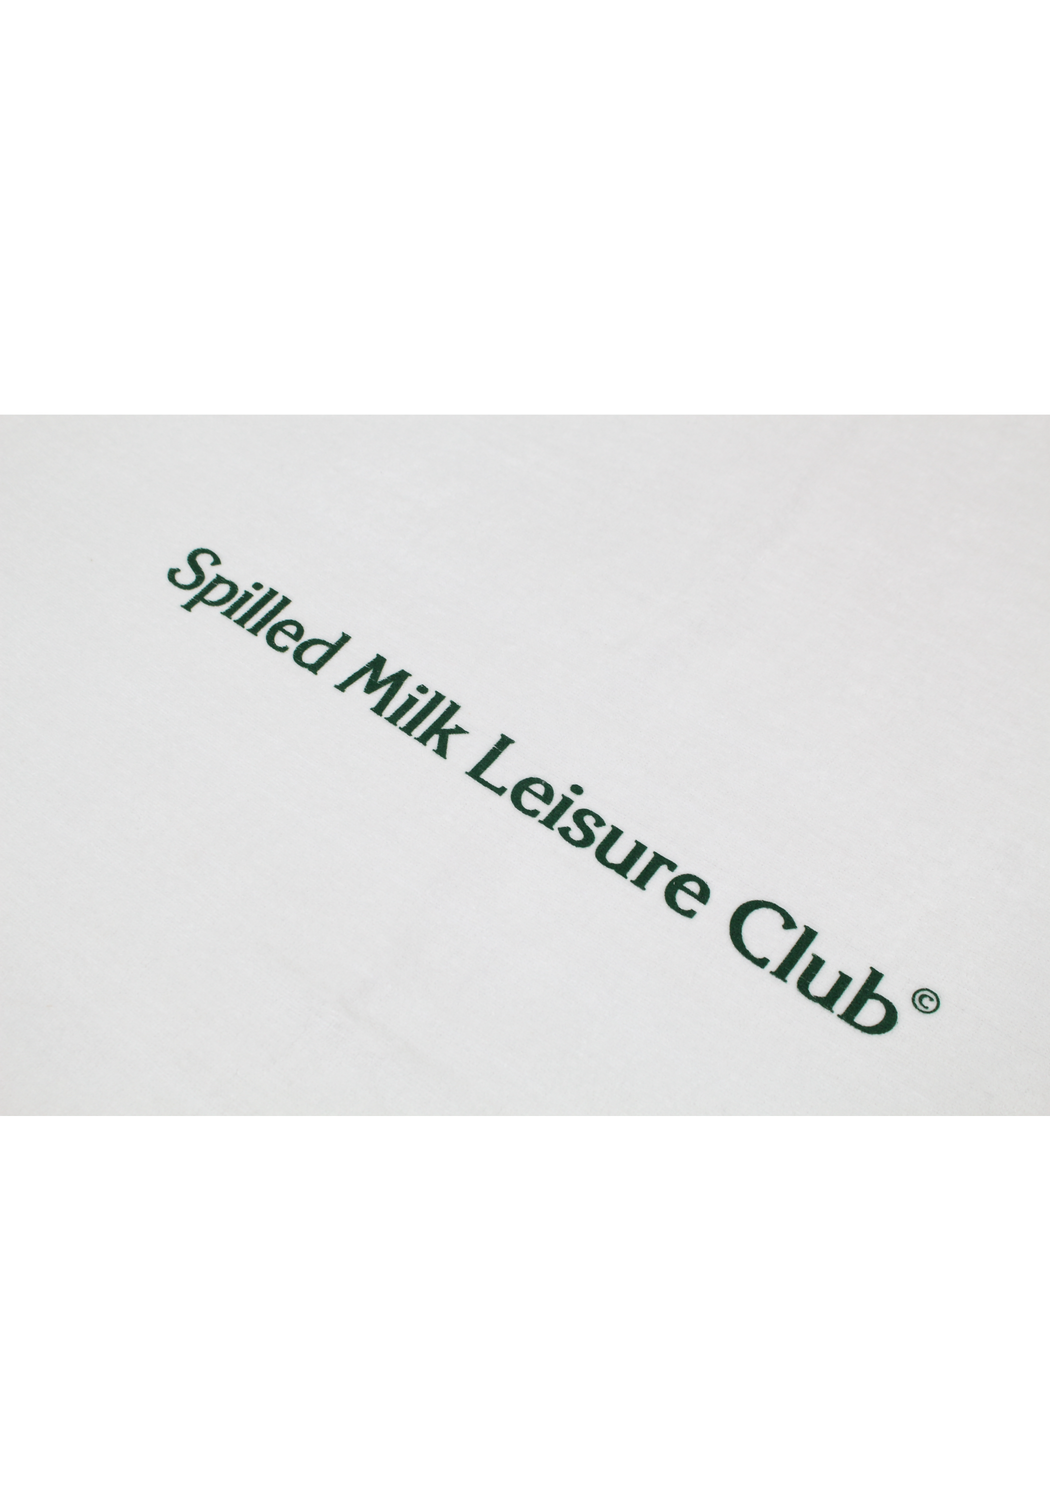 products/LeisureClub_Towel_-01.png